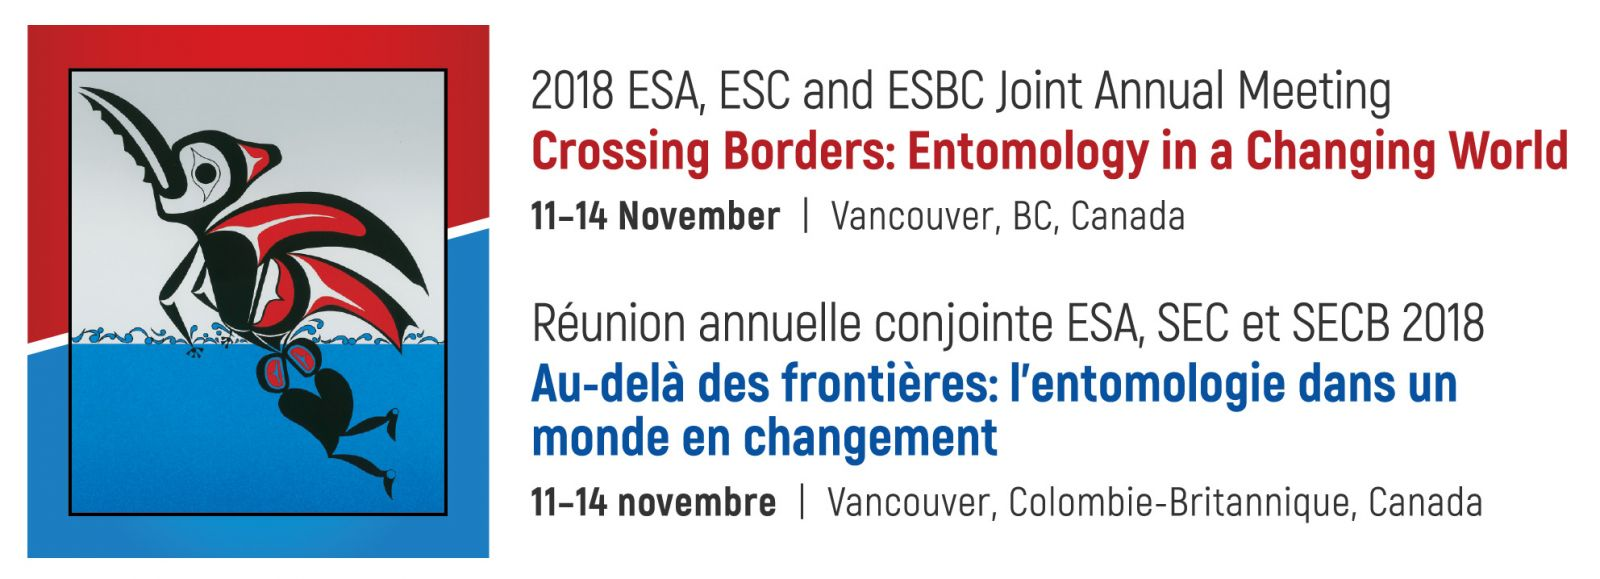 2018 joint annual meeting entomological society of america 2018 esa esc and esbc joint annual meeting fandeluxe Gallery